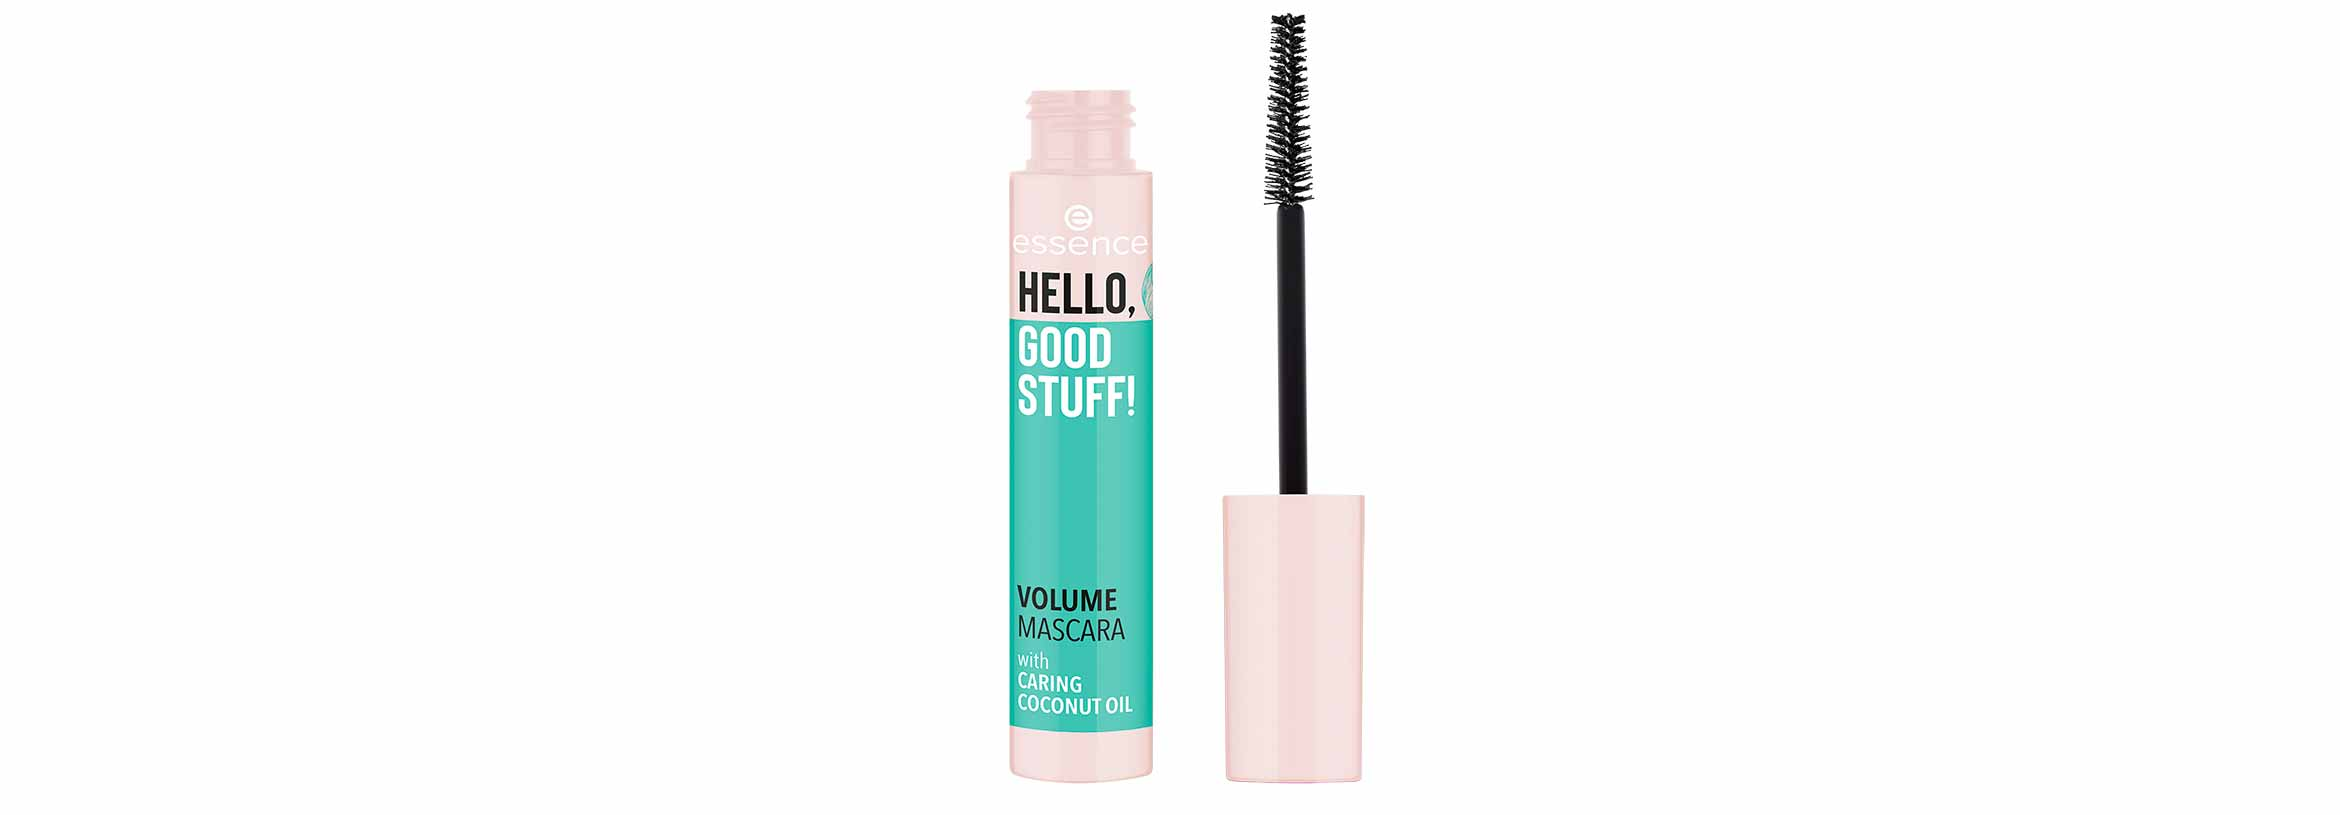 essence hello, good stuff volume mascara